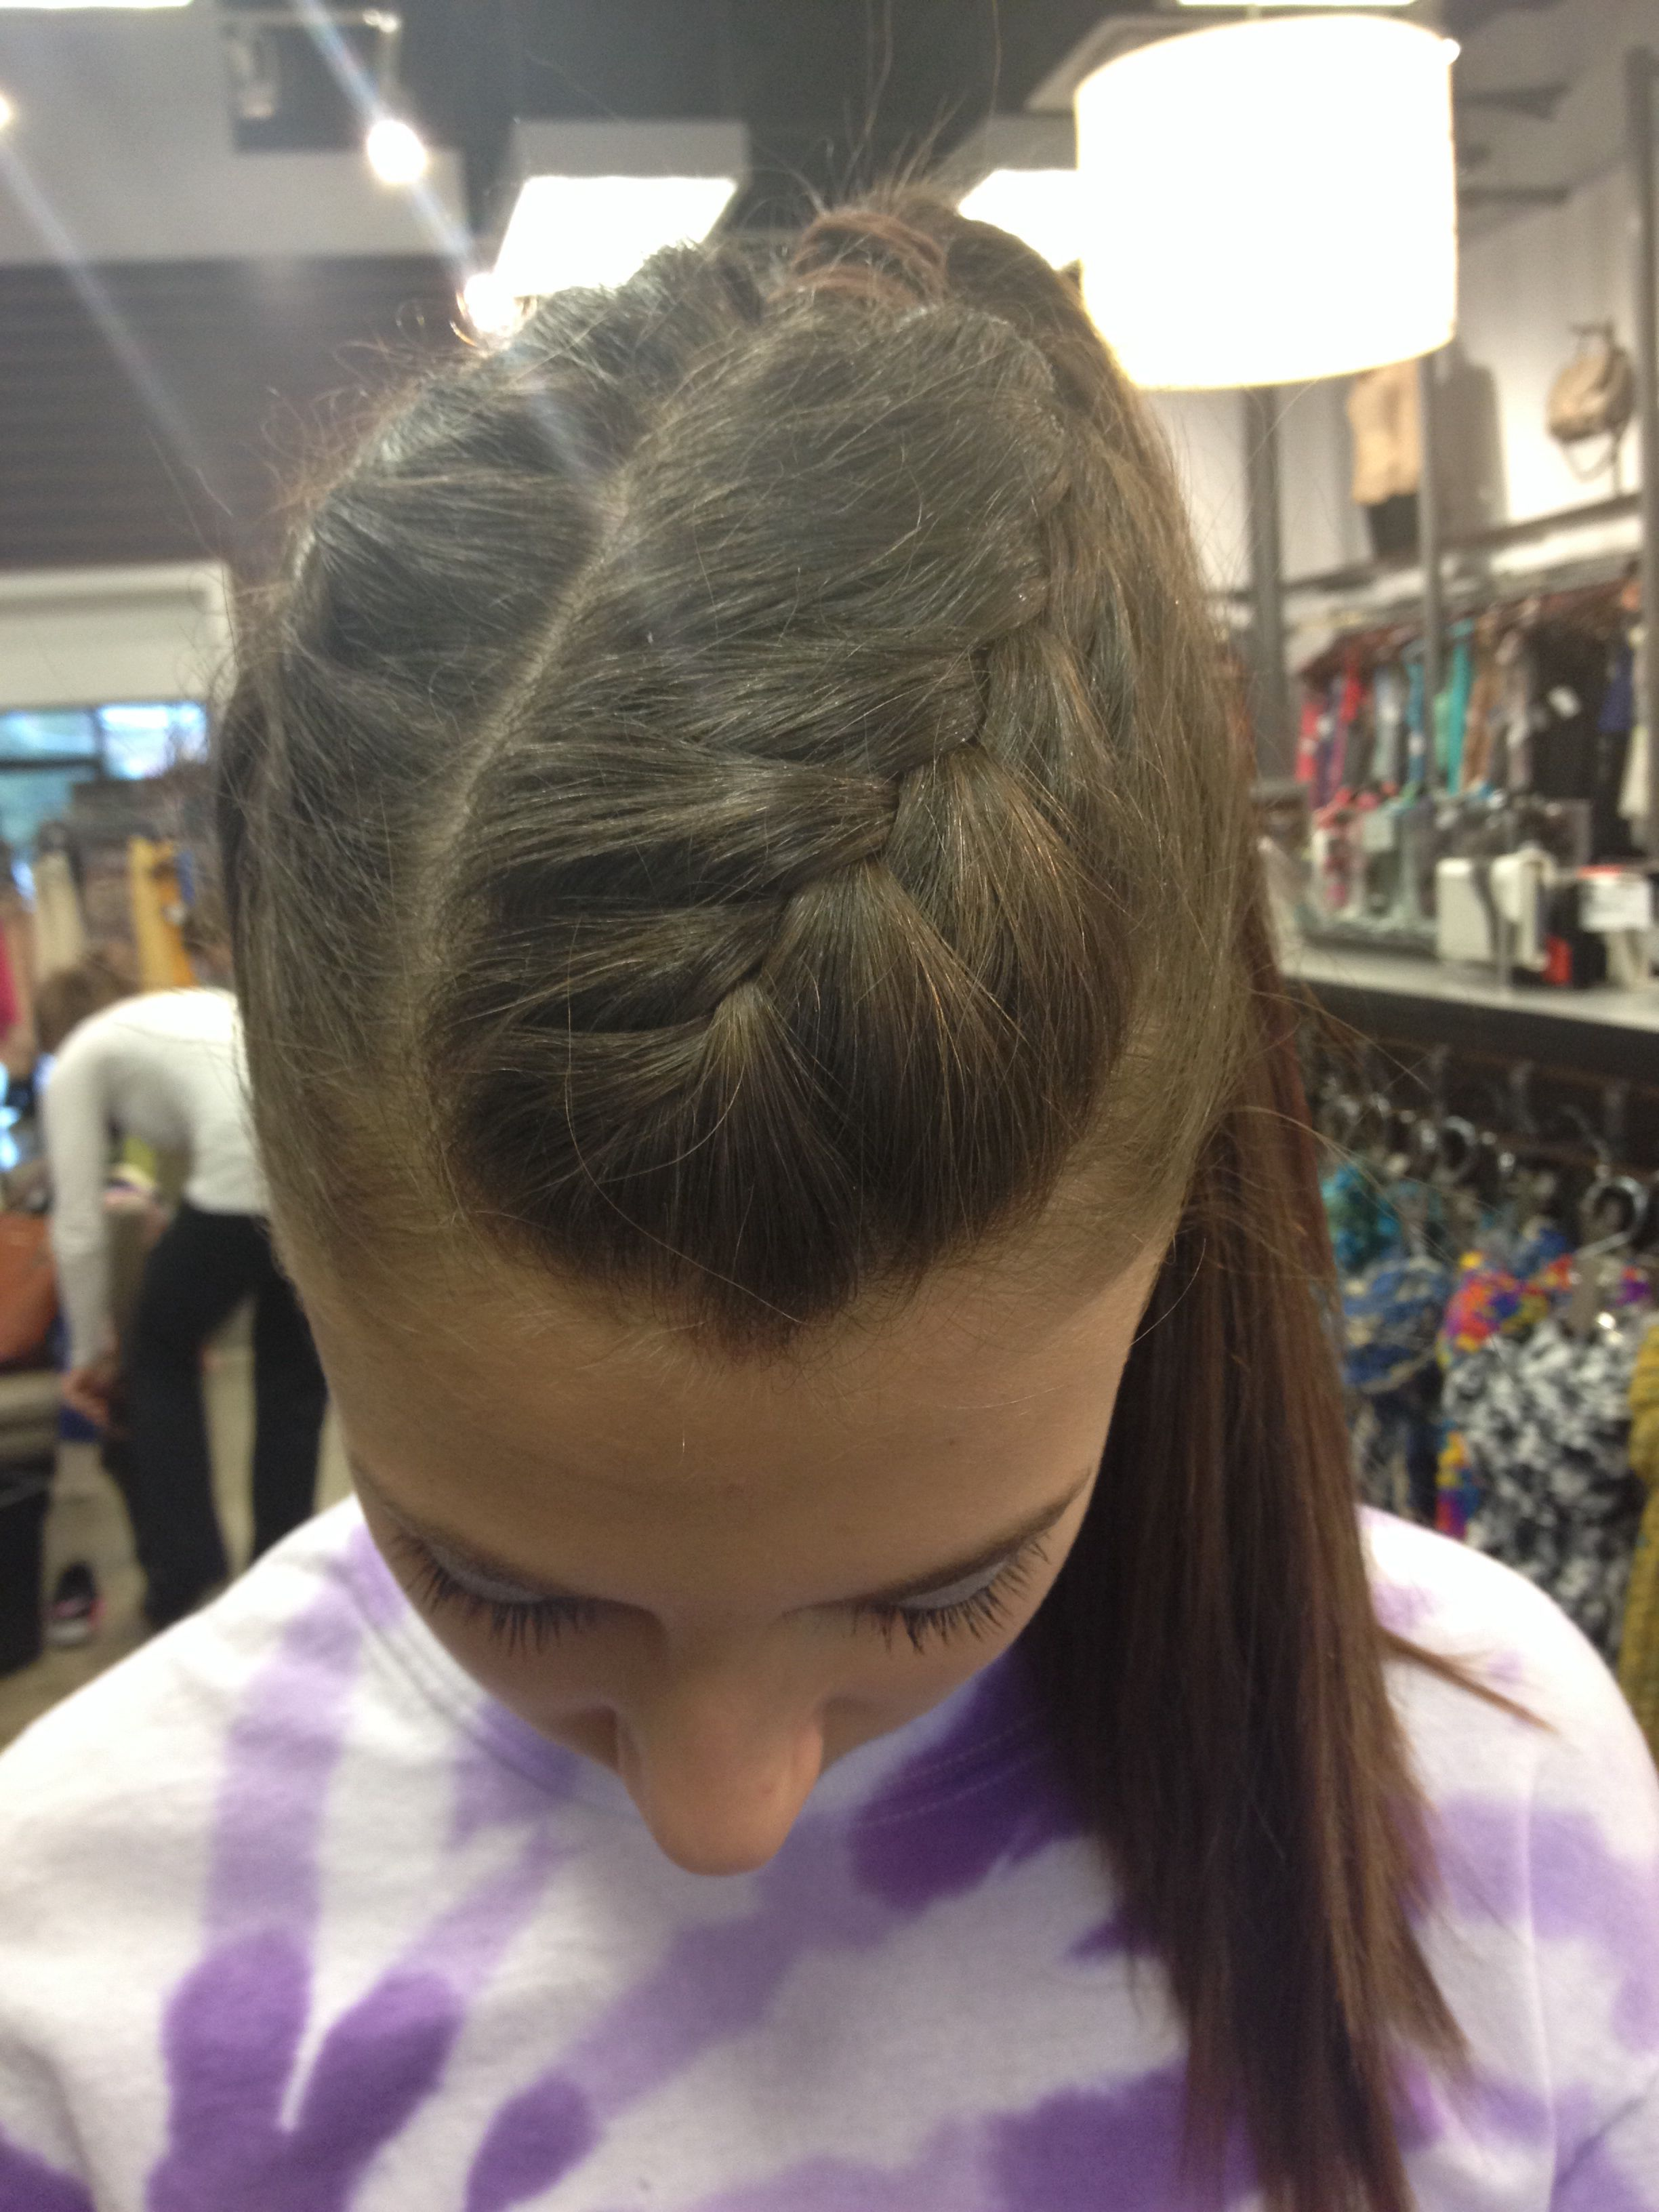 Cheer Hair Braided On 2 Sides With High Ponytail Basketball Hairstyles Sports Hairstyles Soccer Hair